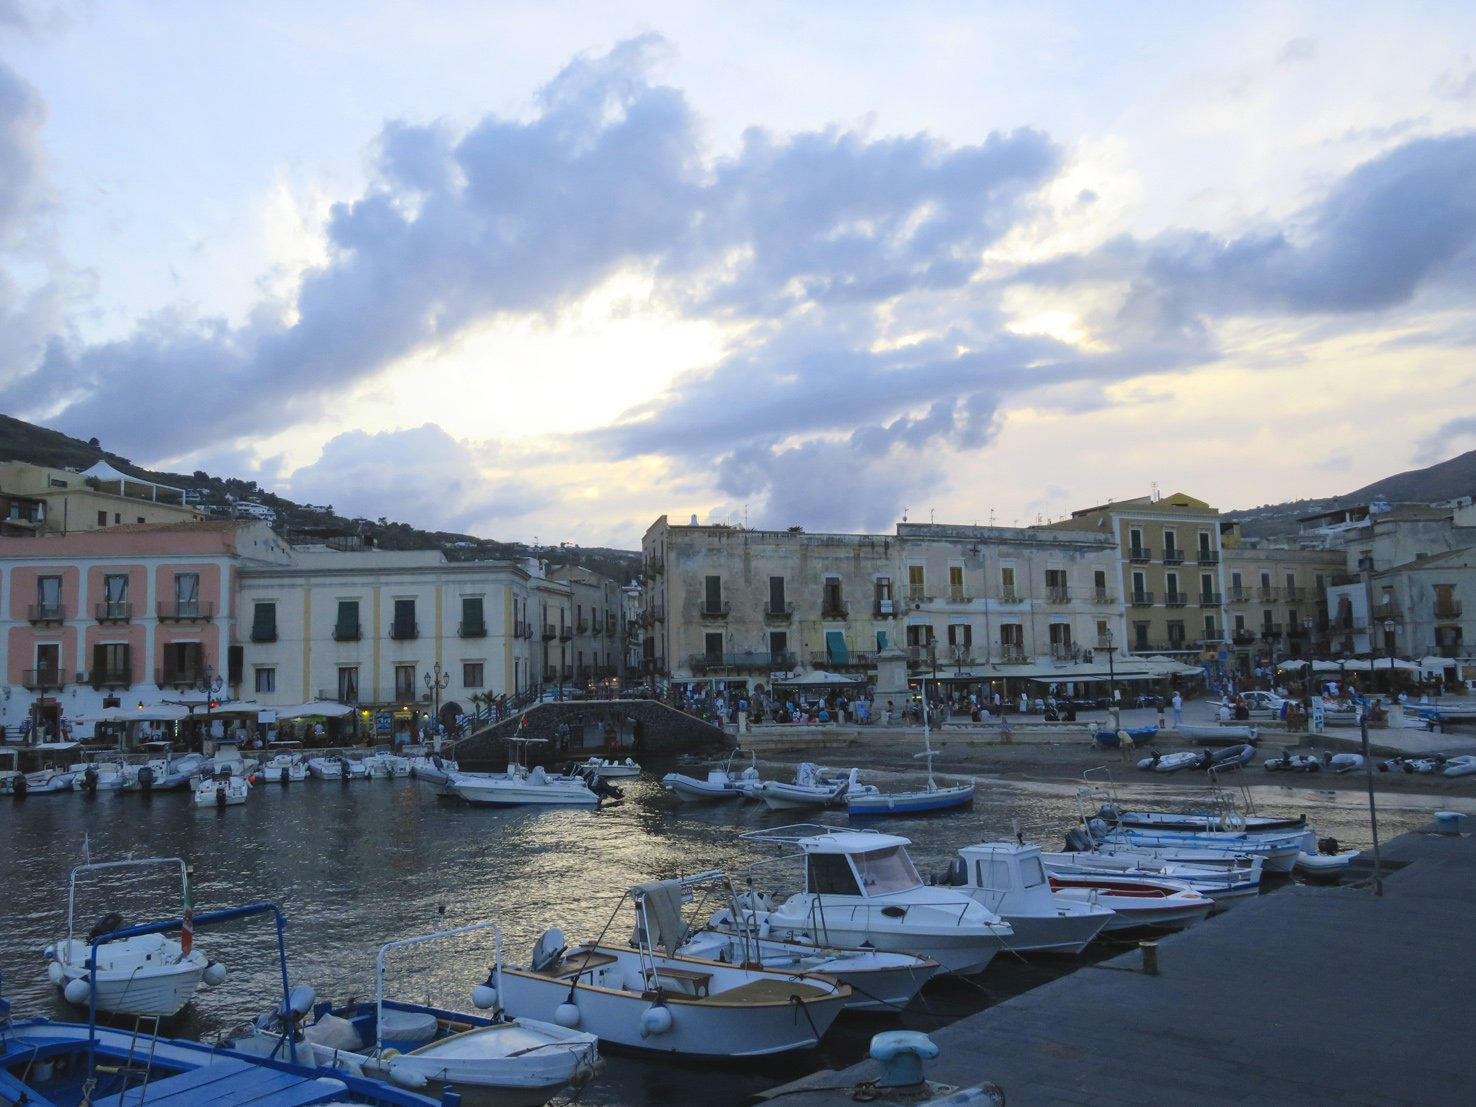 Marina Corta in Lipari Sicily - things to do in Lipari